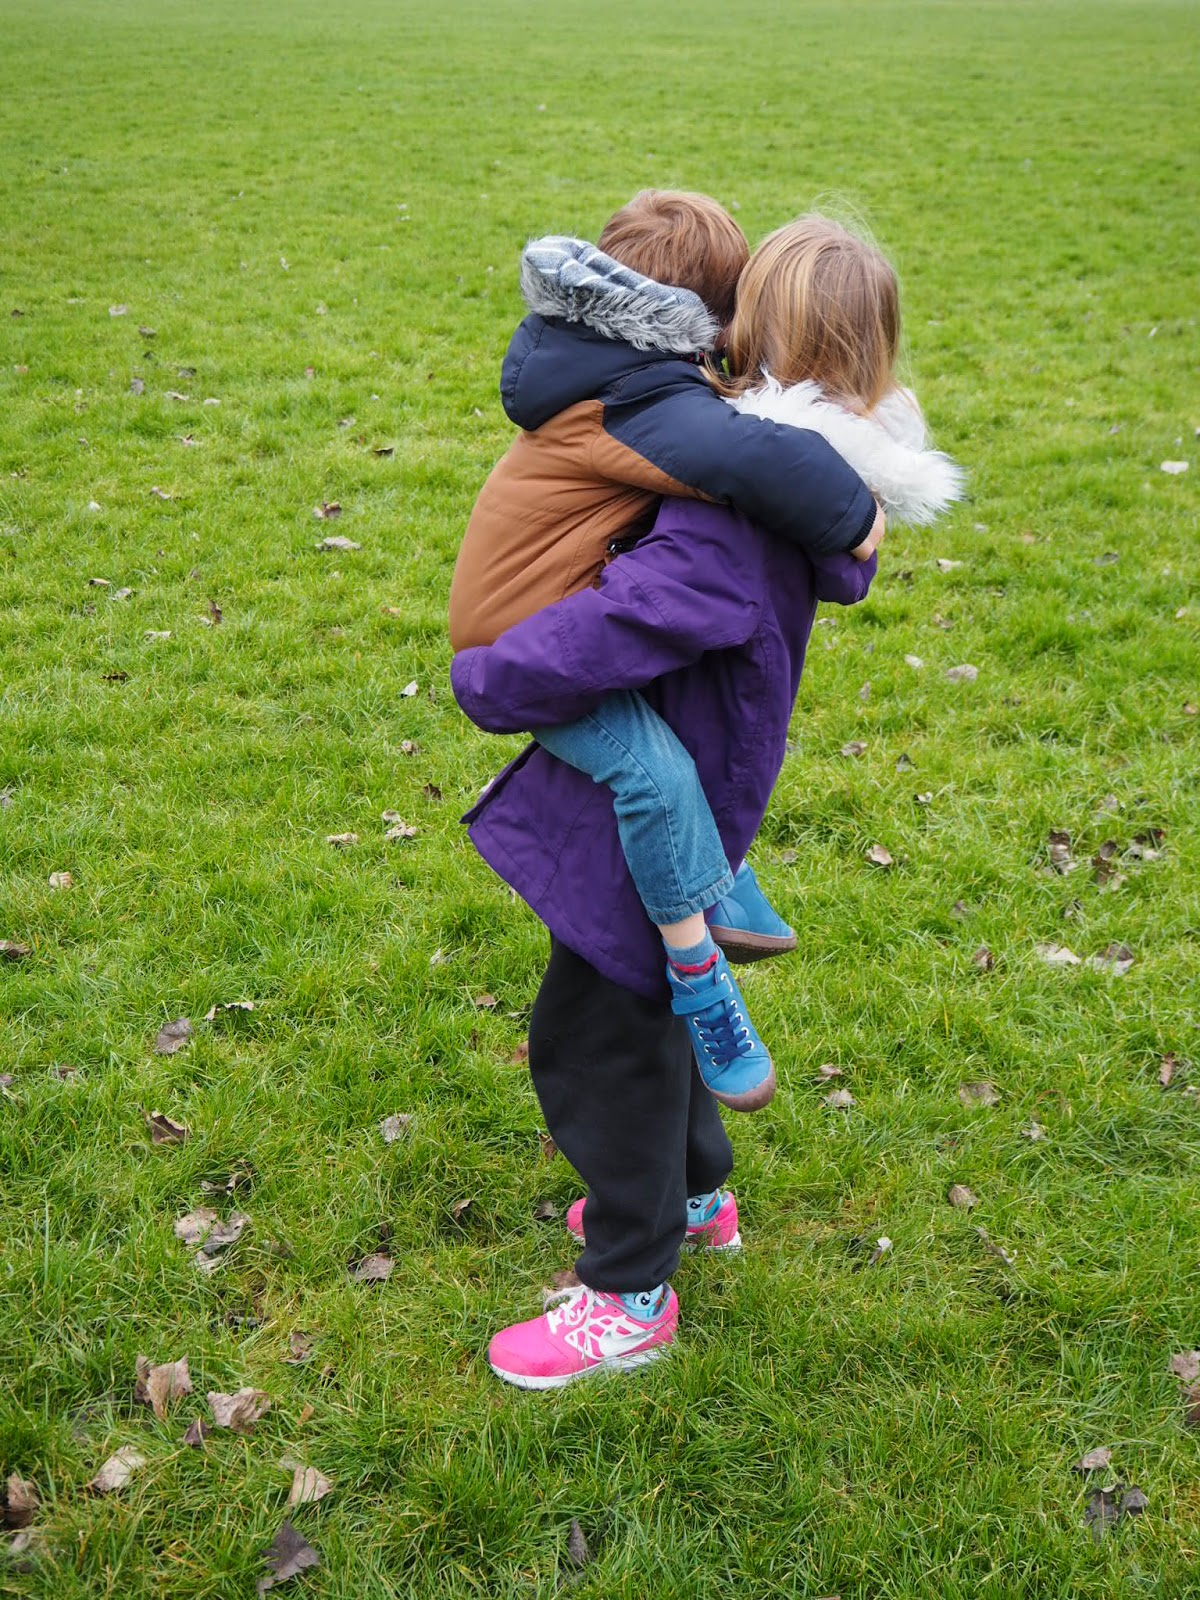 Children hugging and being kind